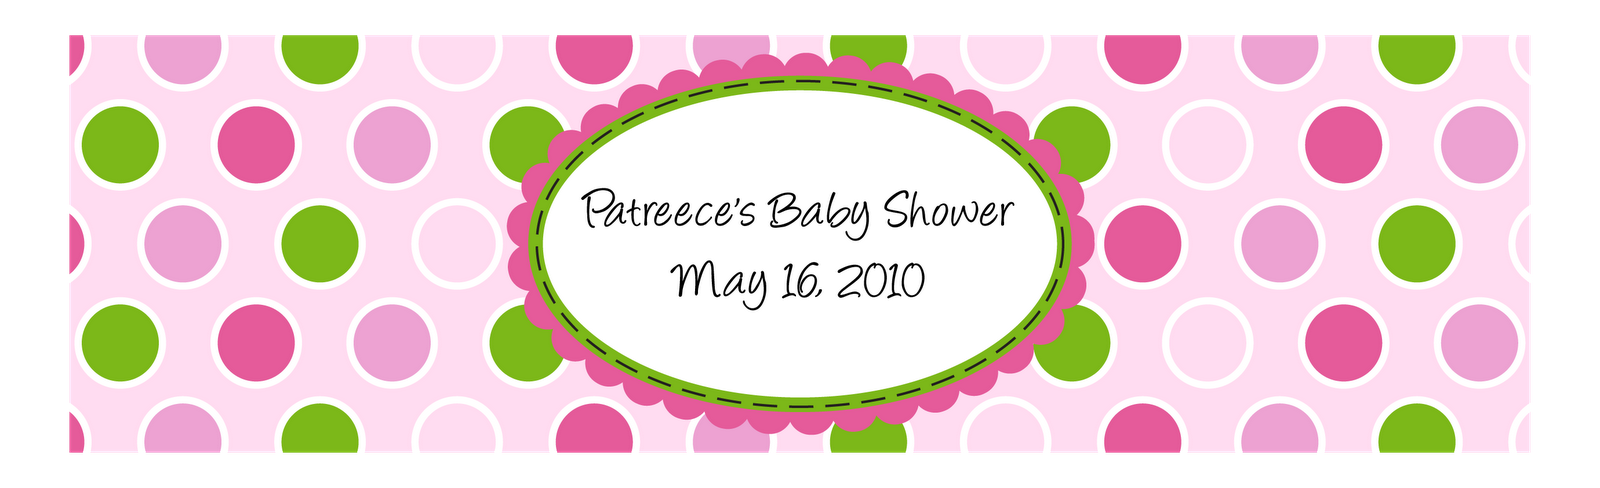 baby shower water bottle labels free template | ... to facebook ...